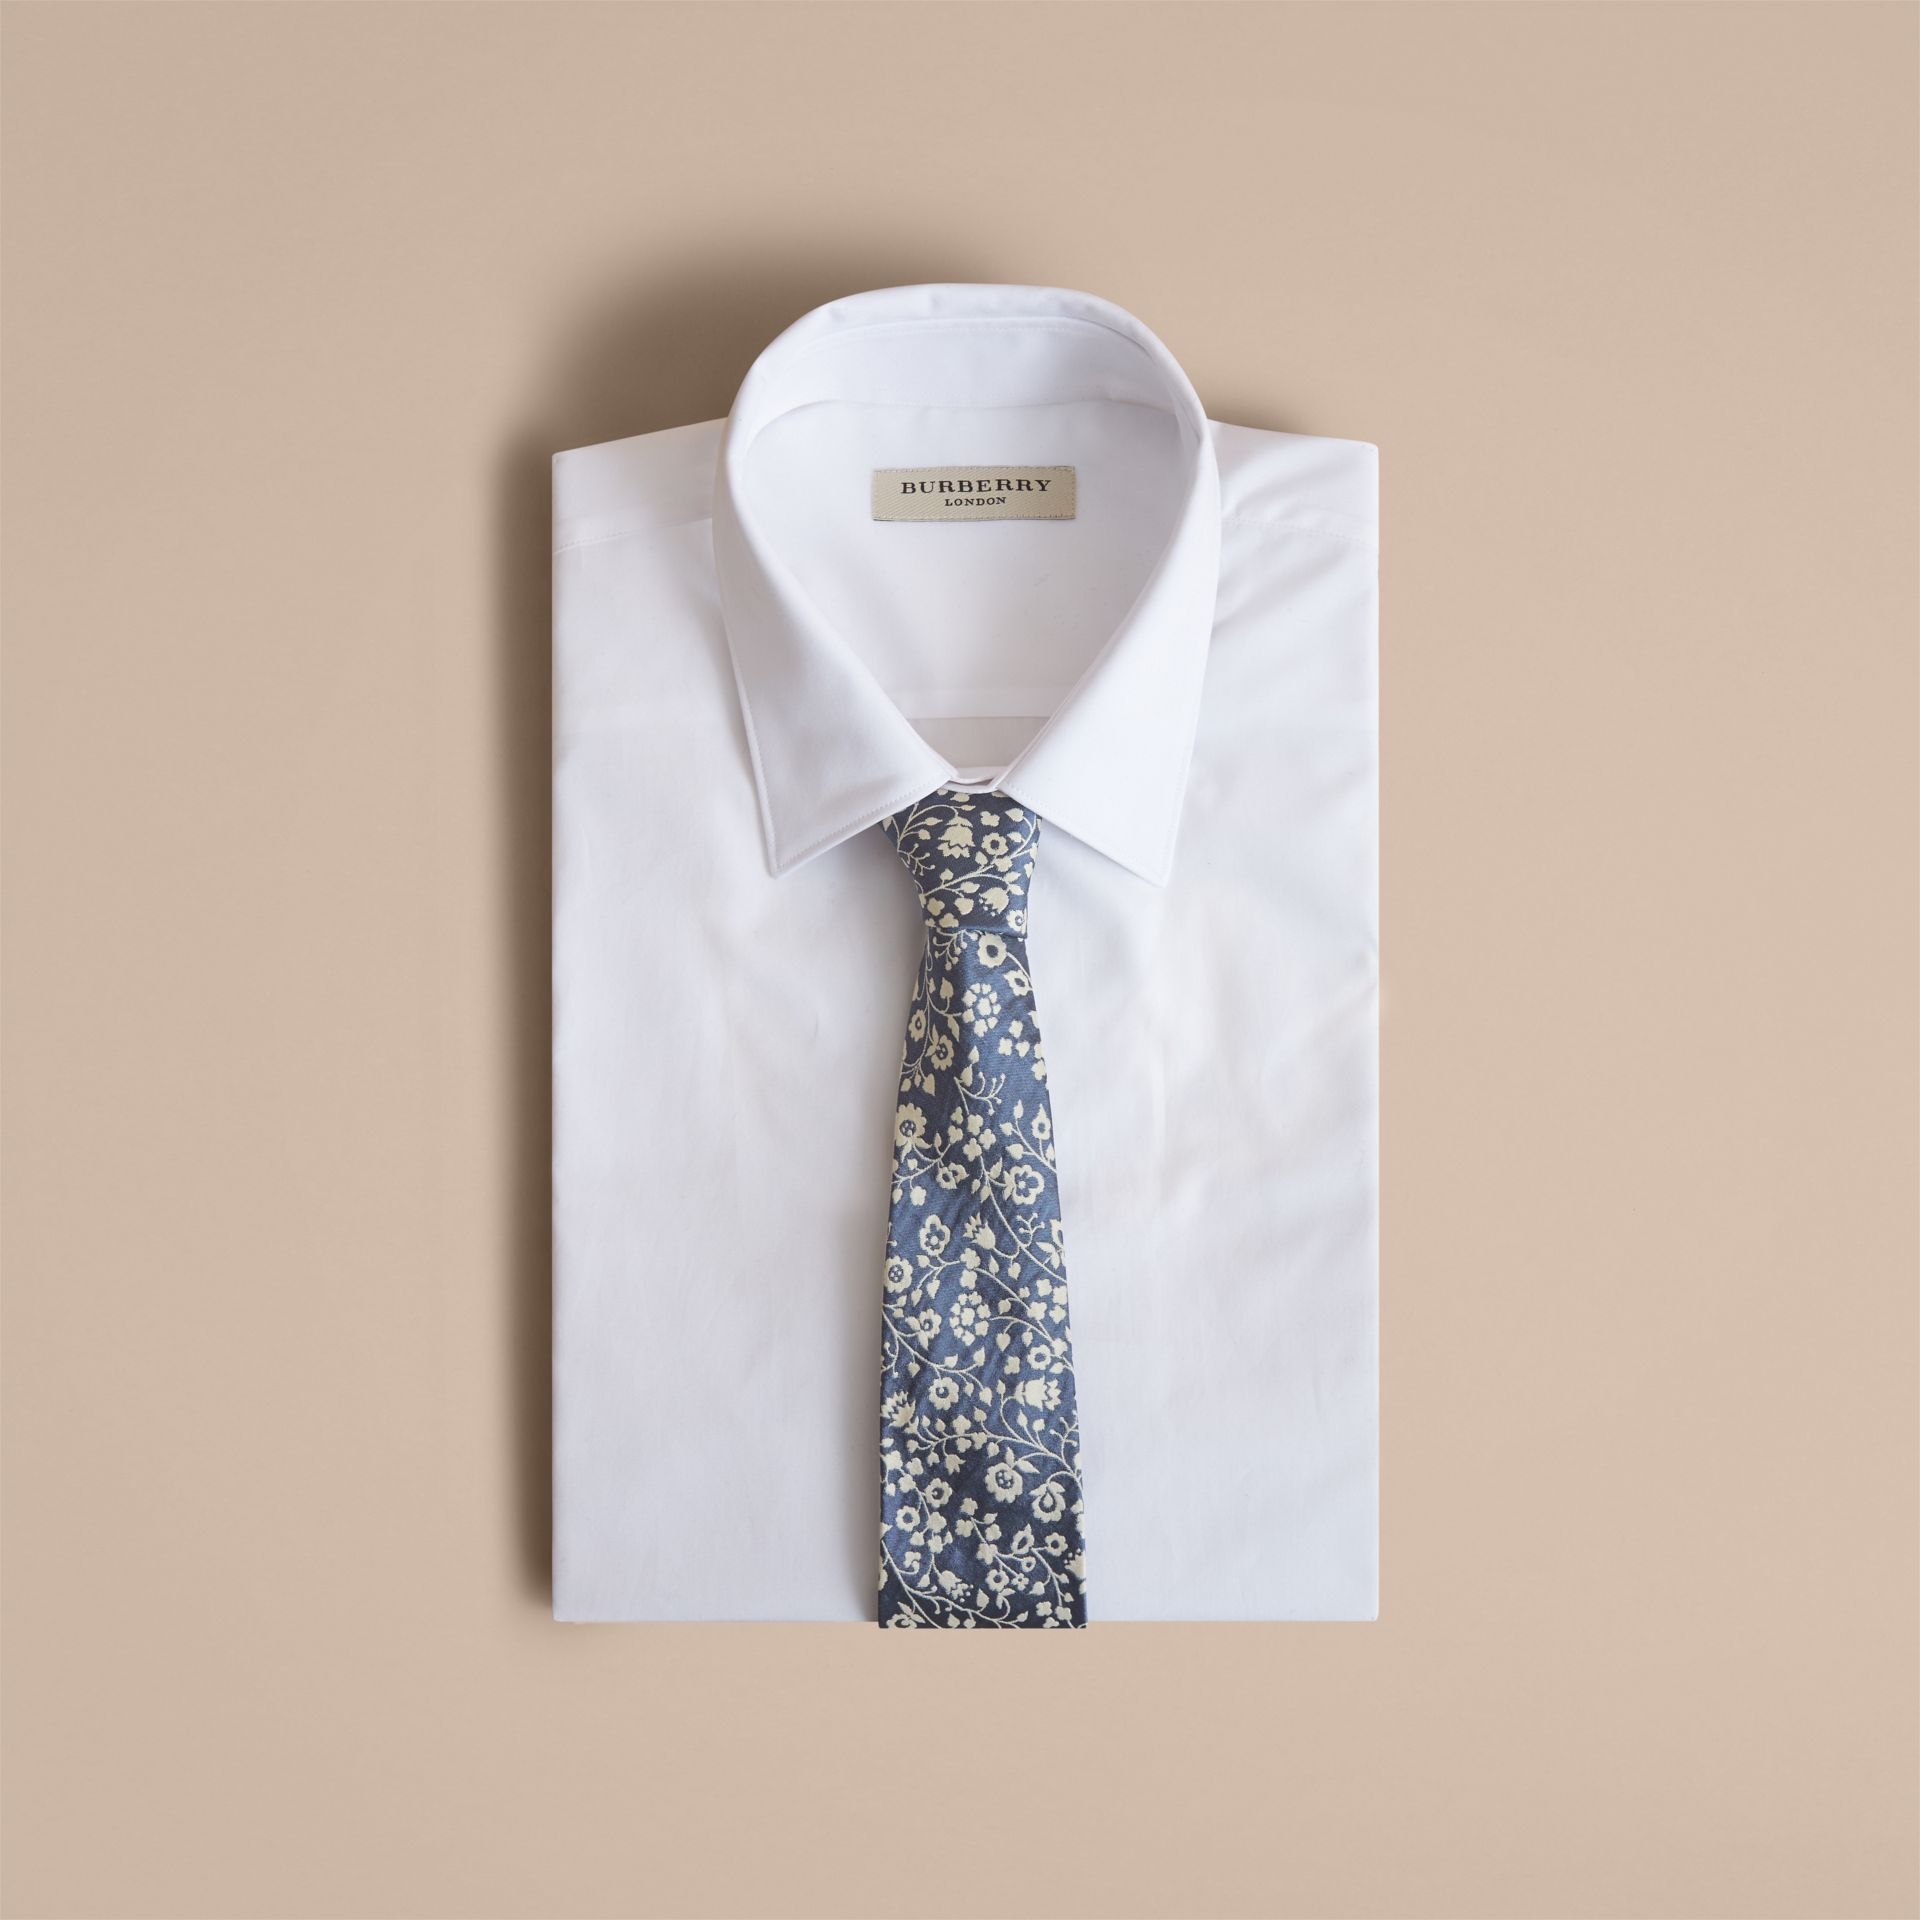 Modern Cut Floral Silk Jacquard Tie in Pale Blue - Men | Burberry Australia - gallery image 4